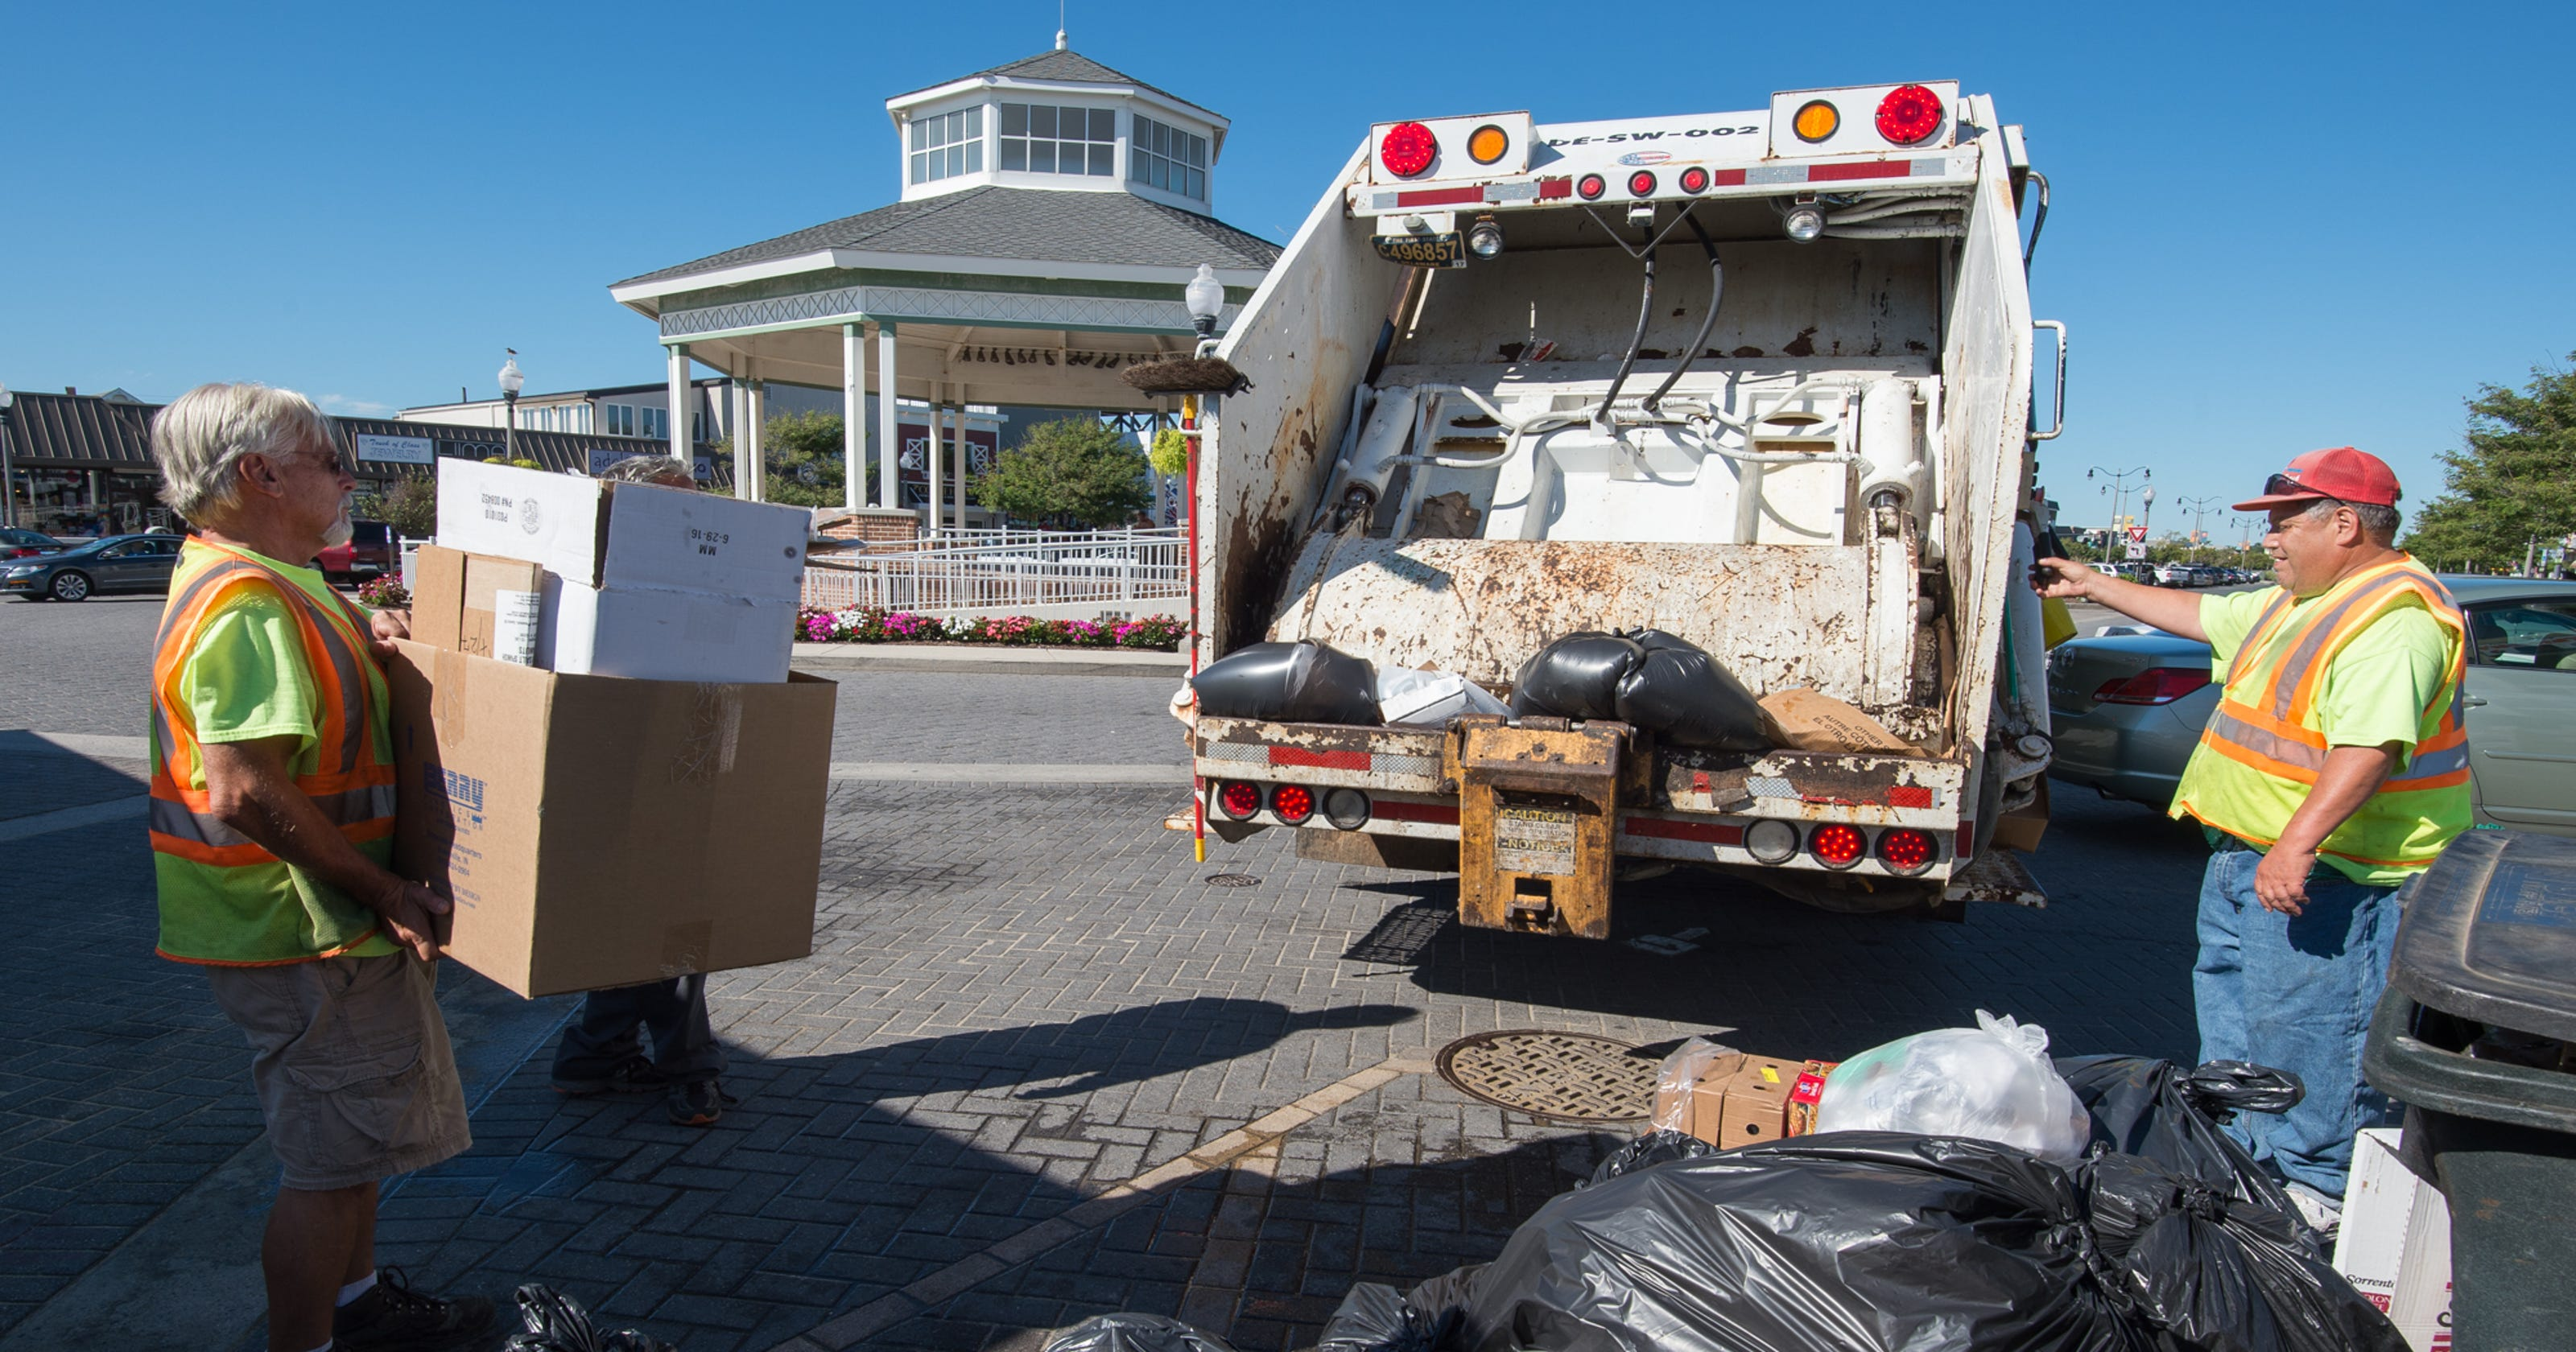 Delaware Beaches Says Carney S Litter Campaign Helps